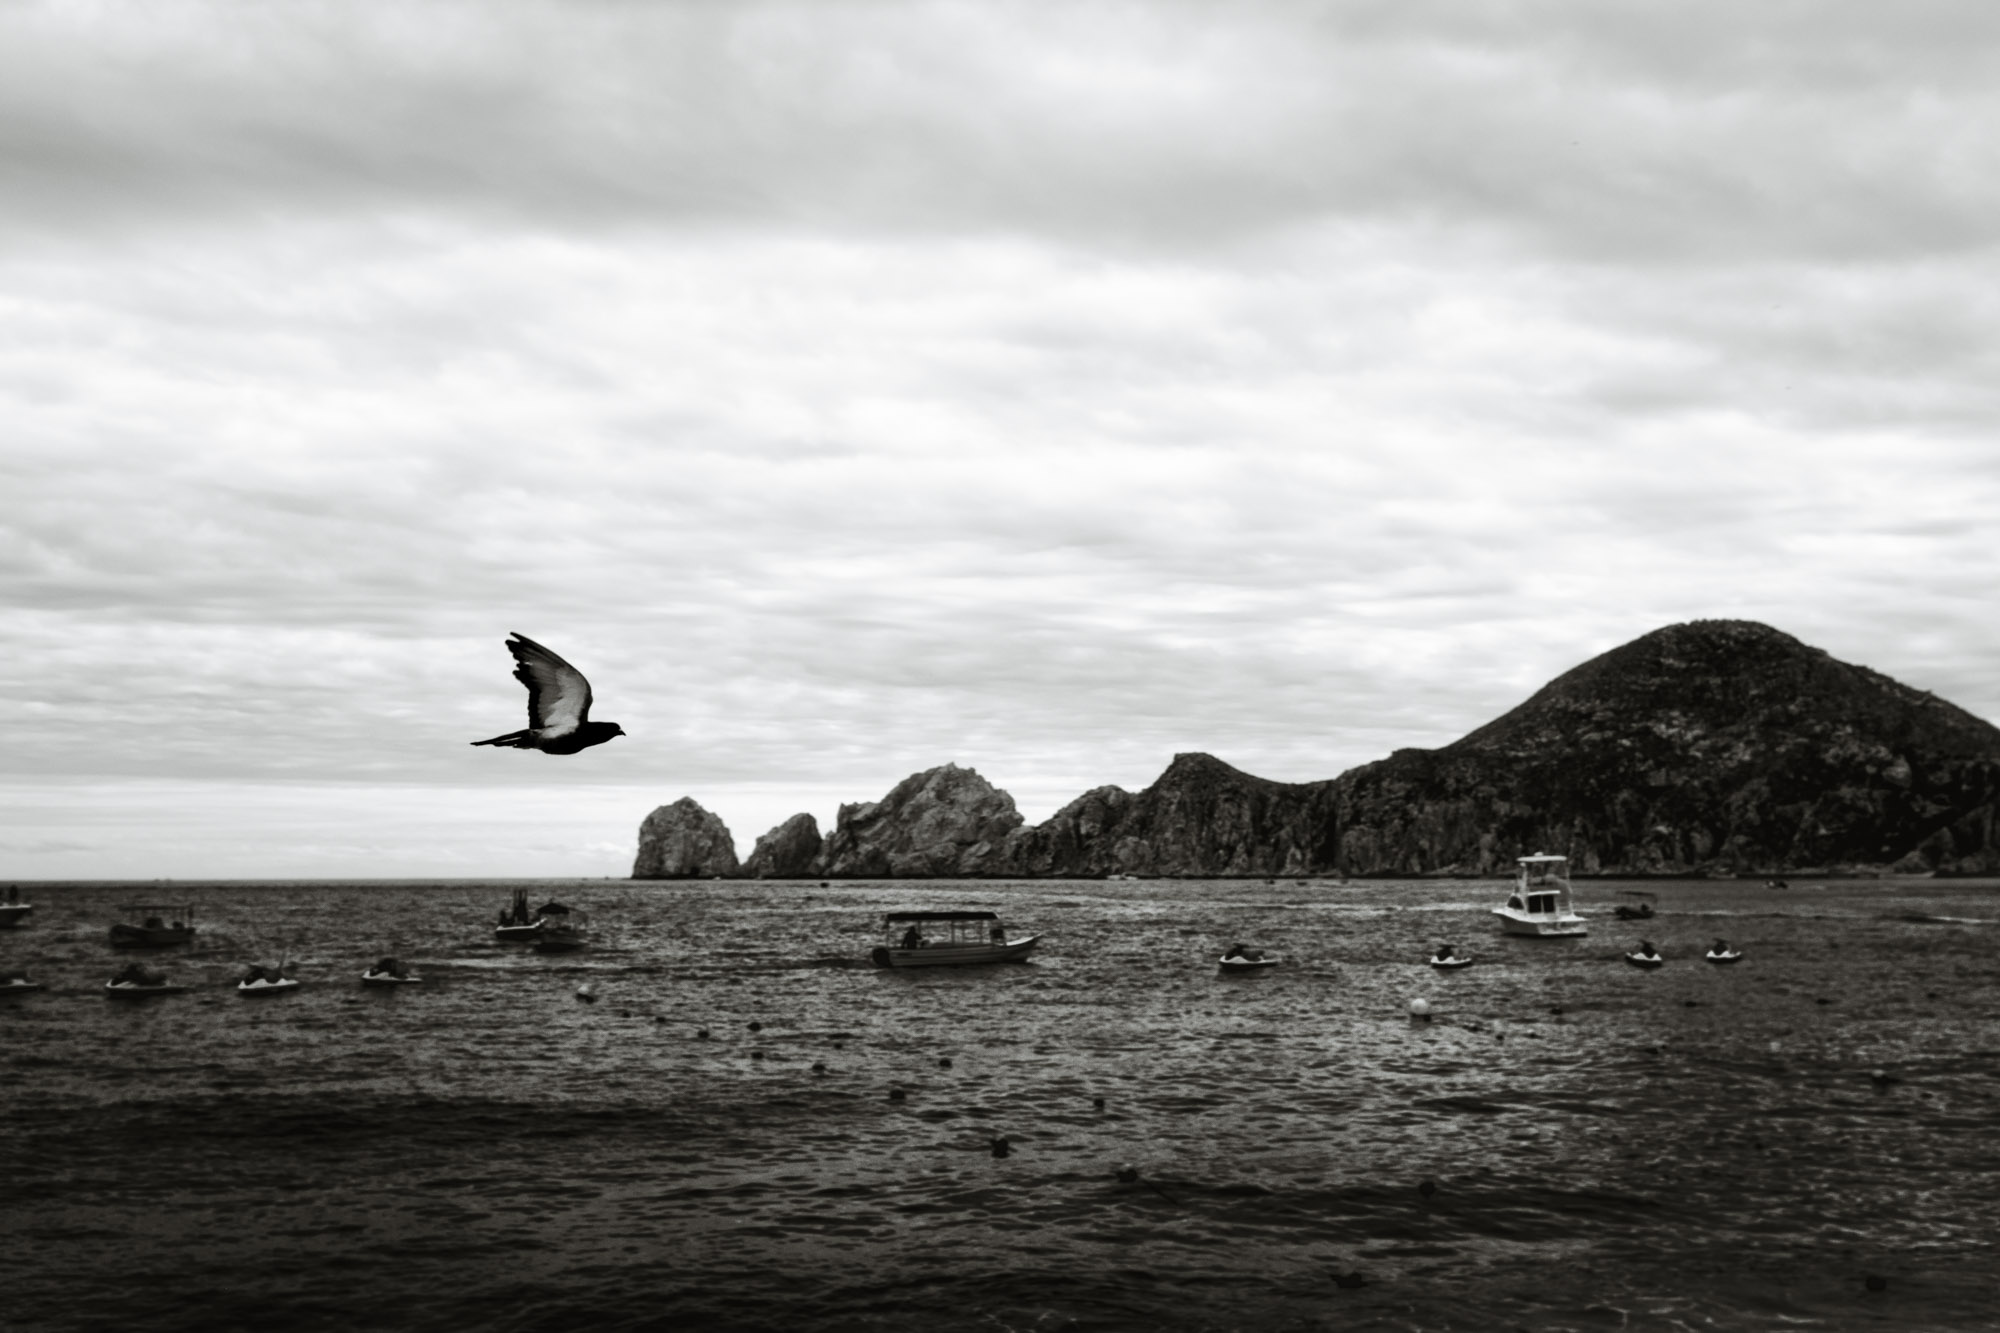 A single bird flies over the ocean in Cabo San Lucas